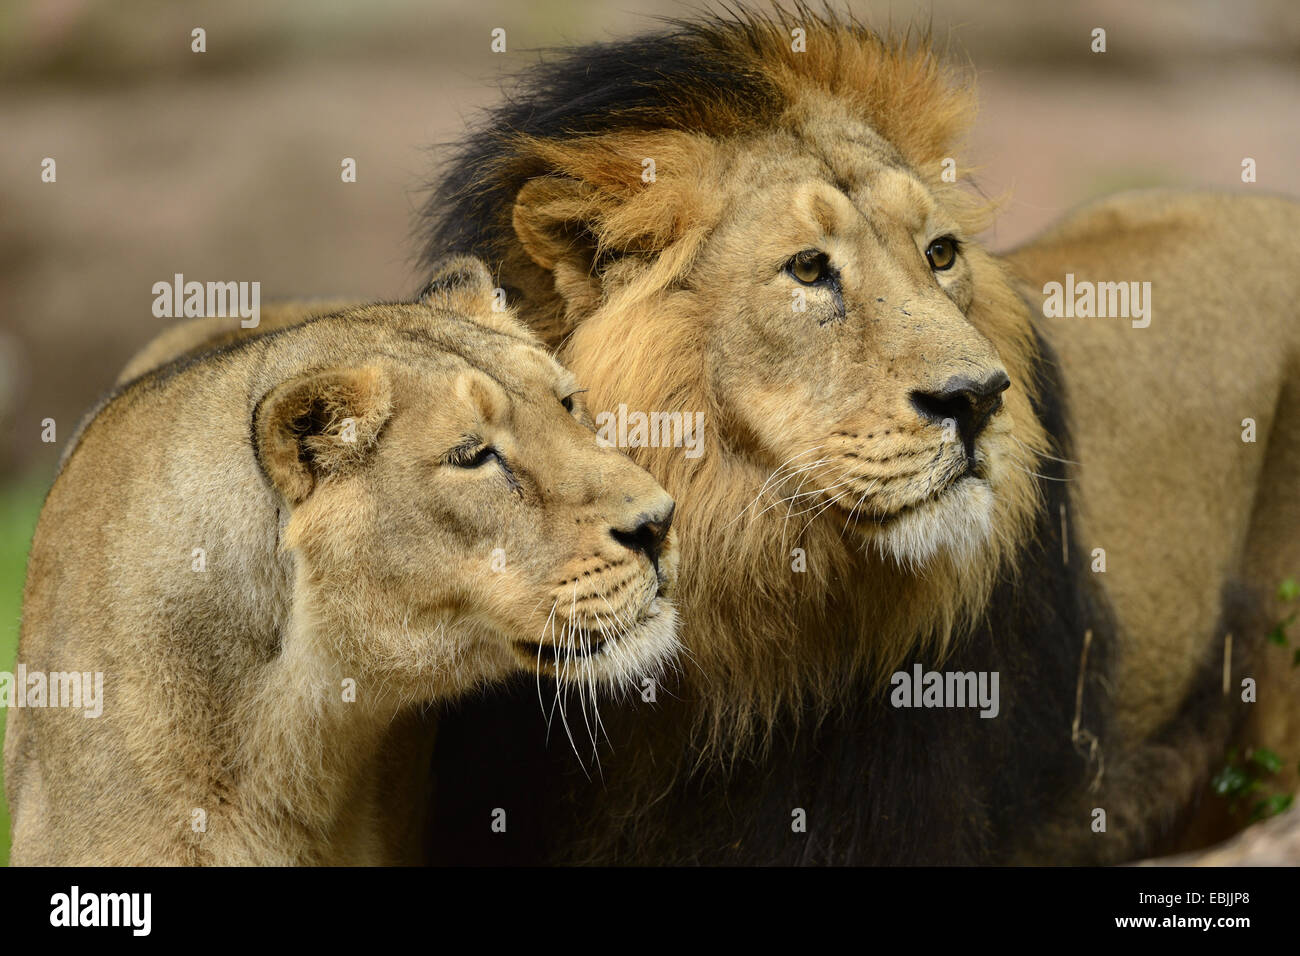 Asiatic lion (Panthera leo persica), portrait of a couple - Stock Image